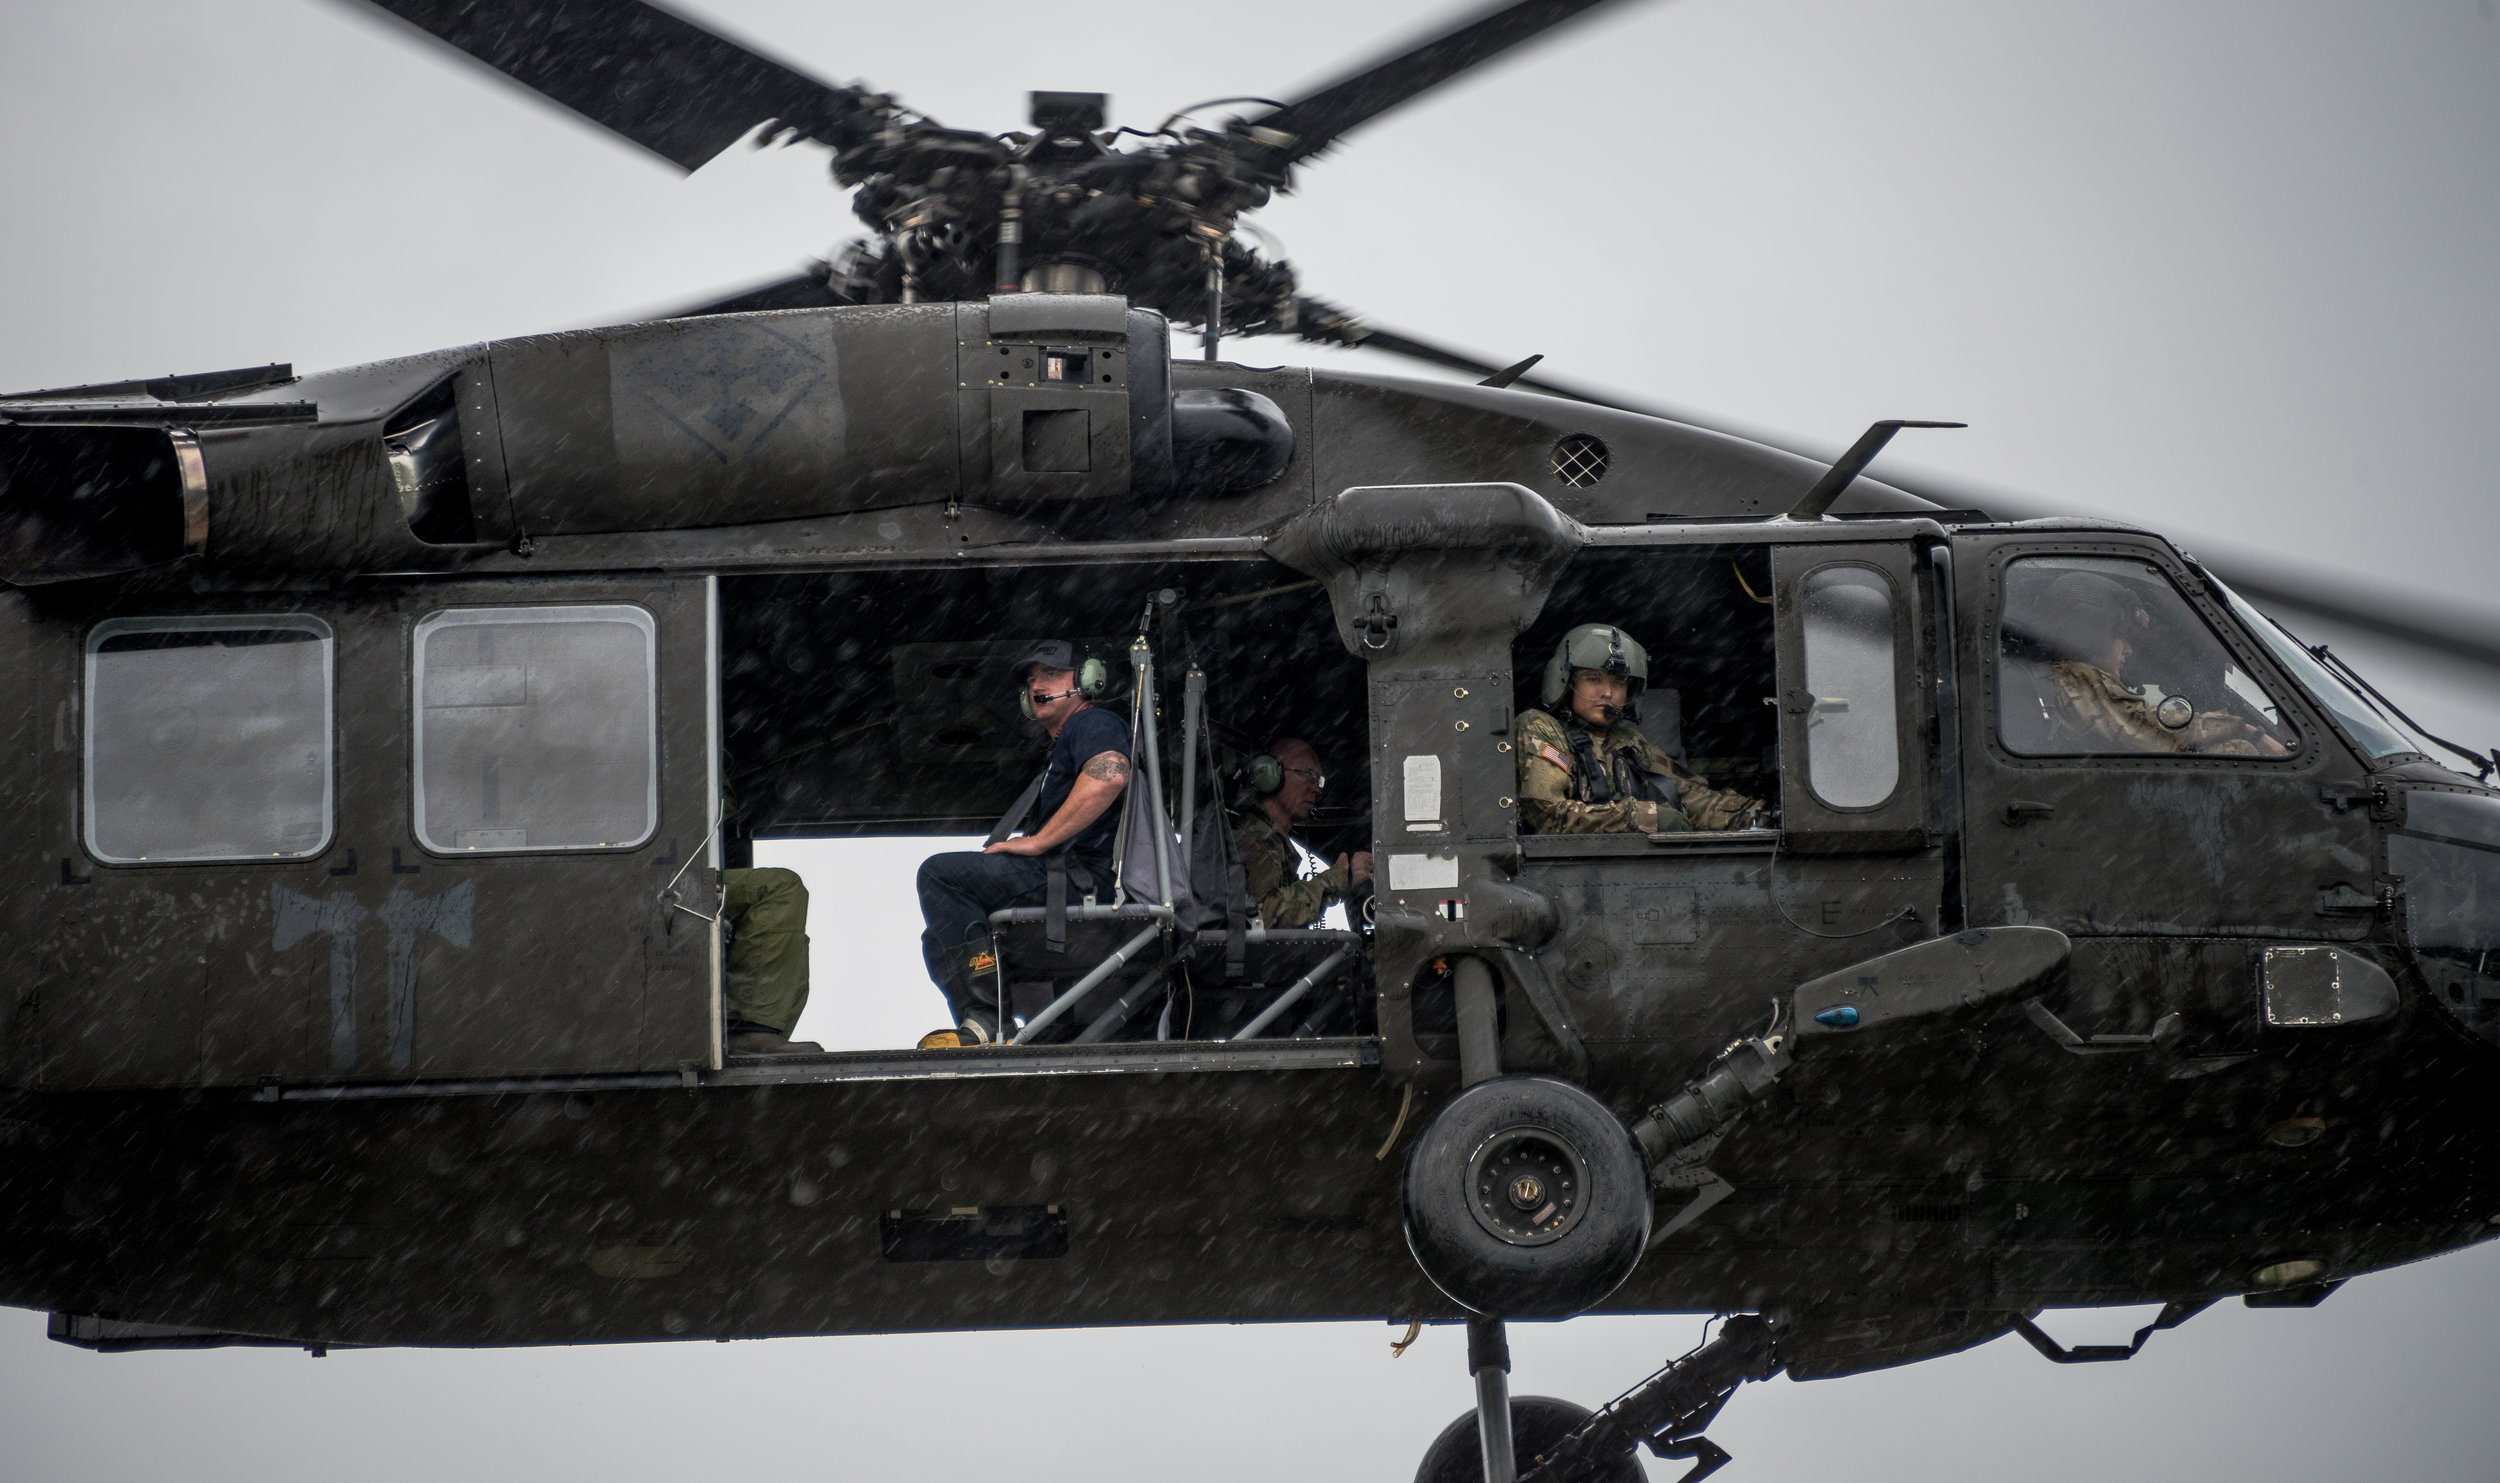 United States Army and MCHD EMS joined forces take off to go respond to 911 calls during hurricane Harvey in Humble, TX, United States on August 29, 2017.  Full editorial coverage for  Anadolu Agency  can be viewed  here (Getty Images)